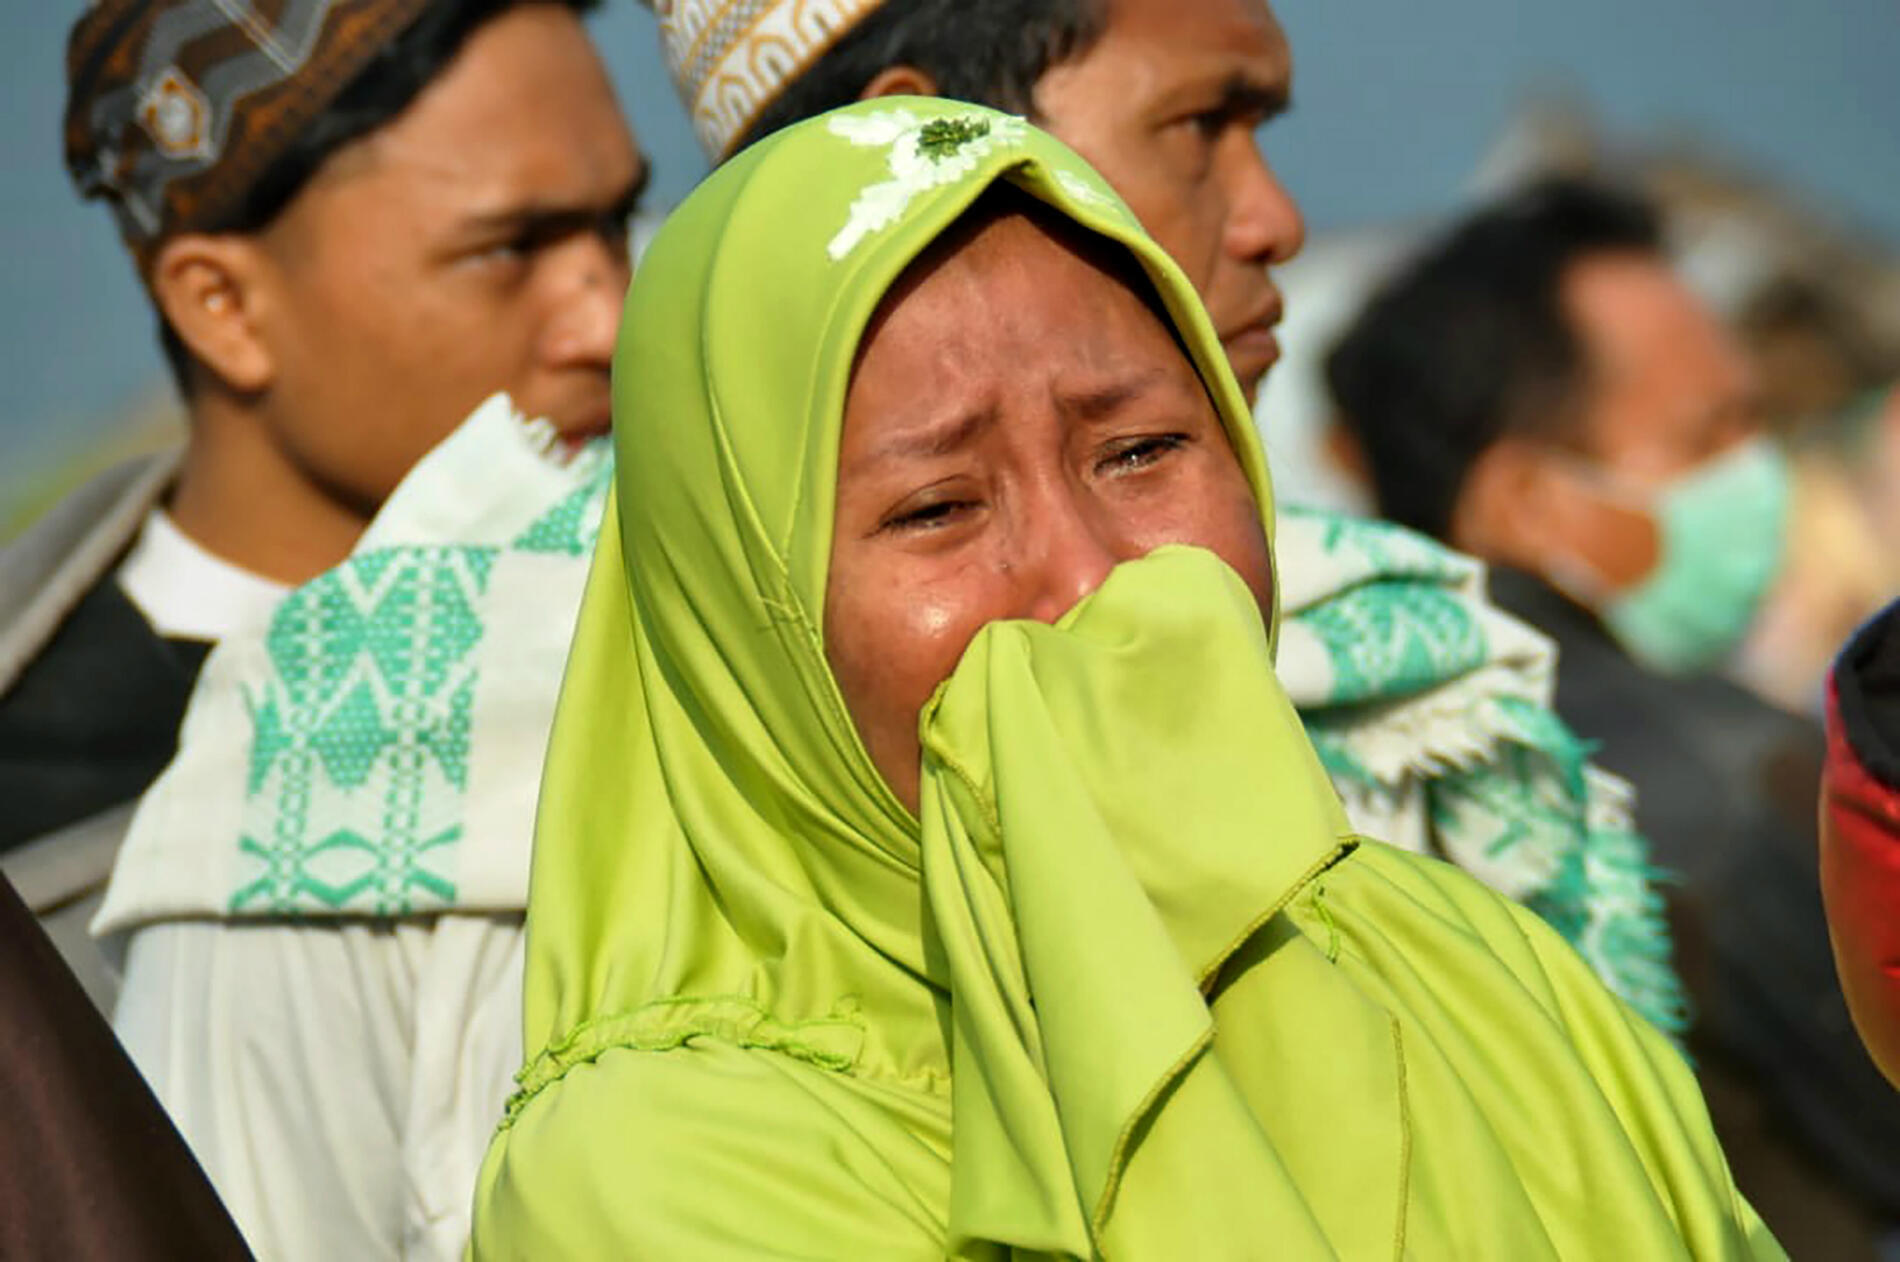 Muhammad Rifki, AFP | As survivors desperately search for their loved ones, many have received devastating news.